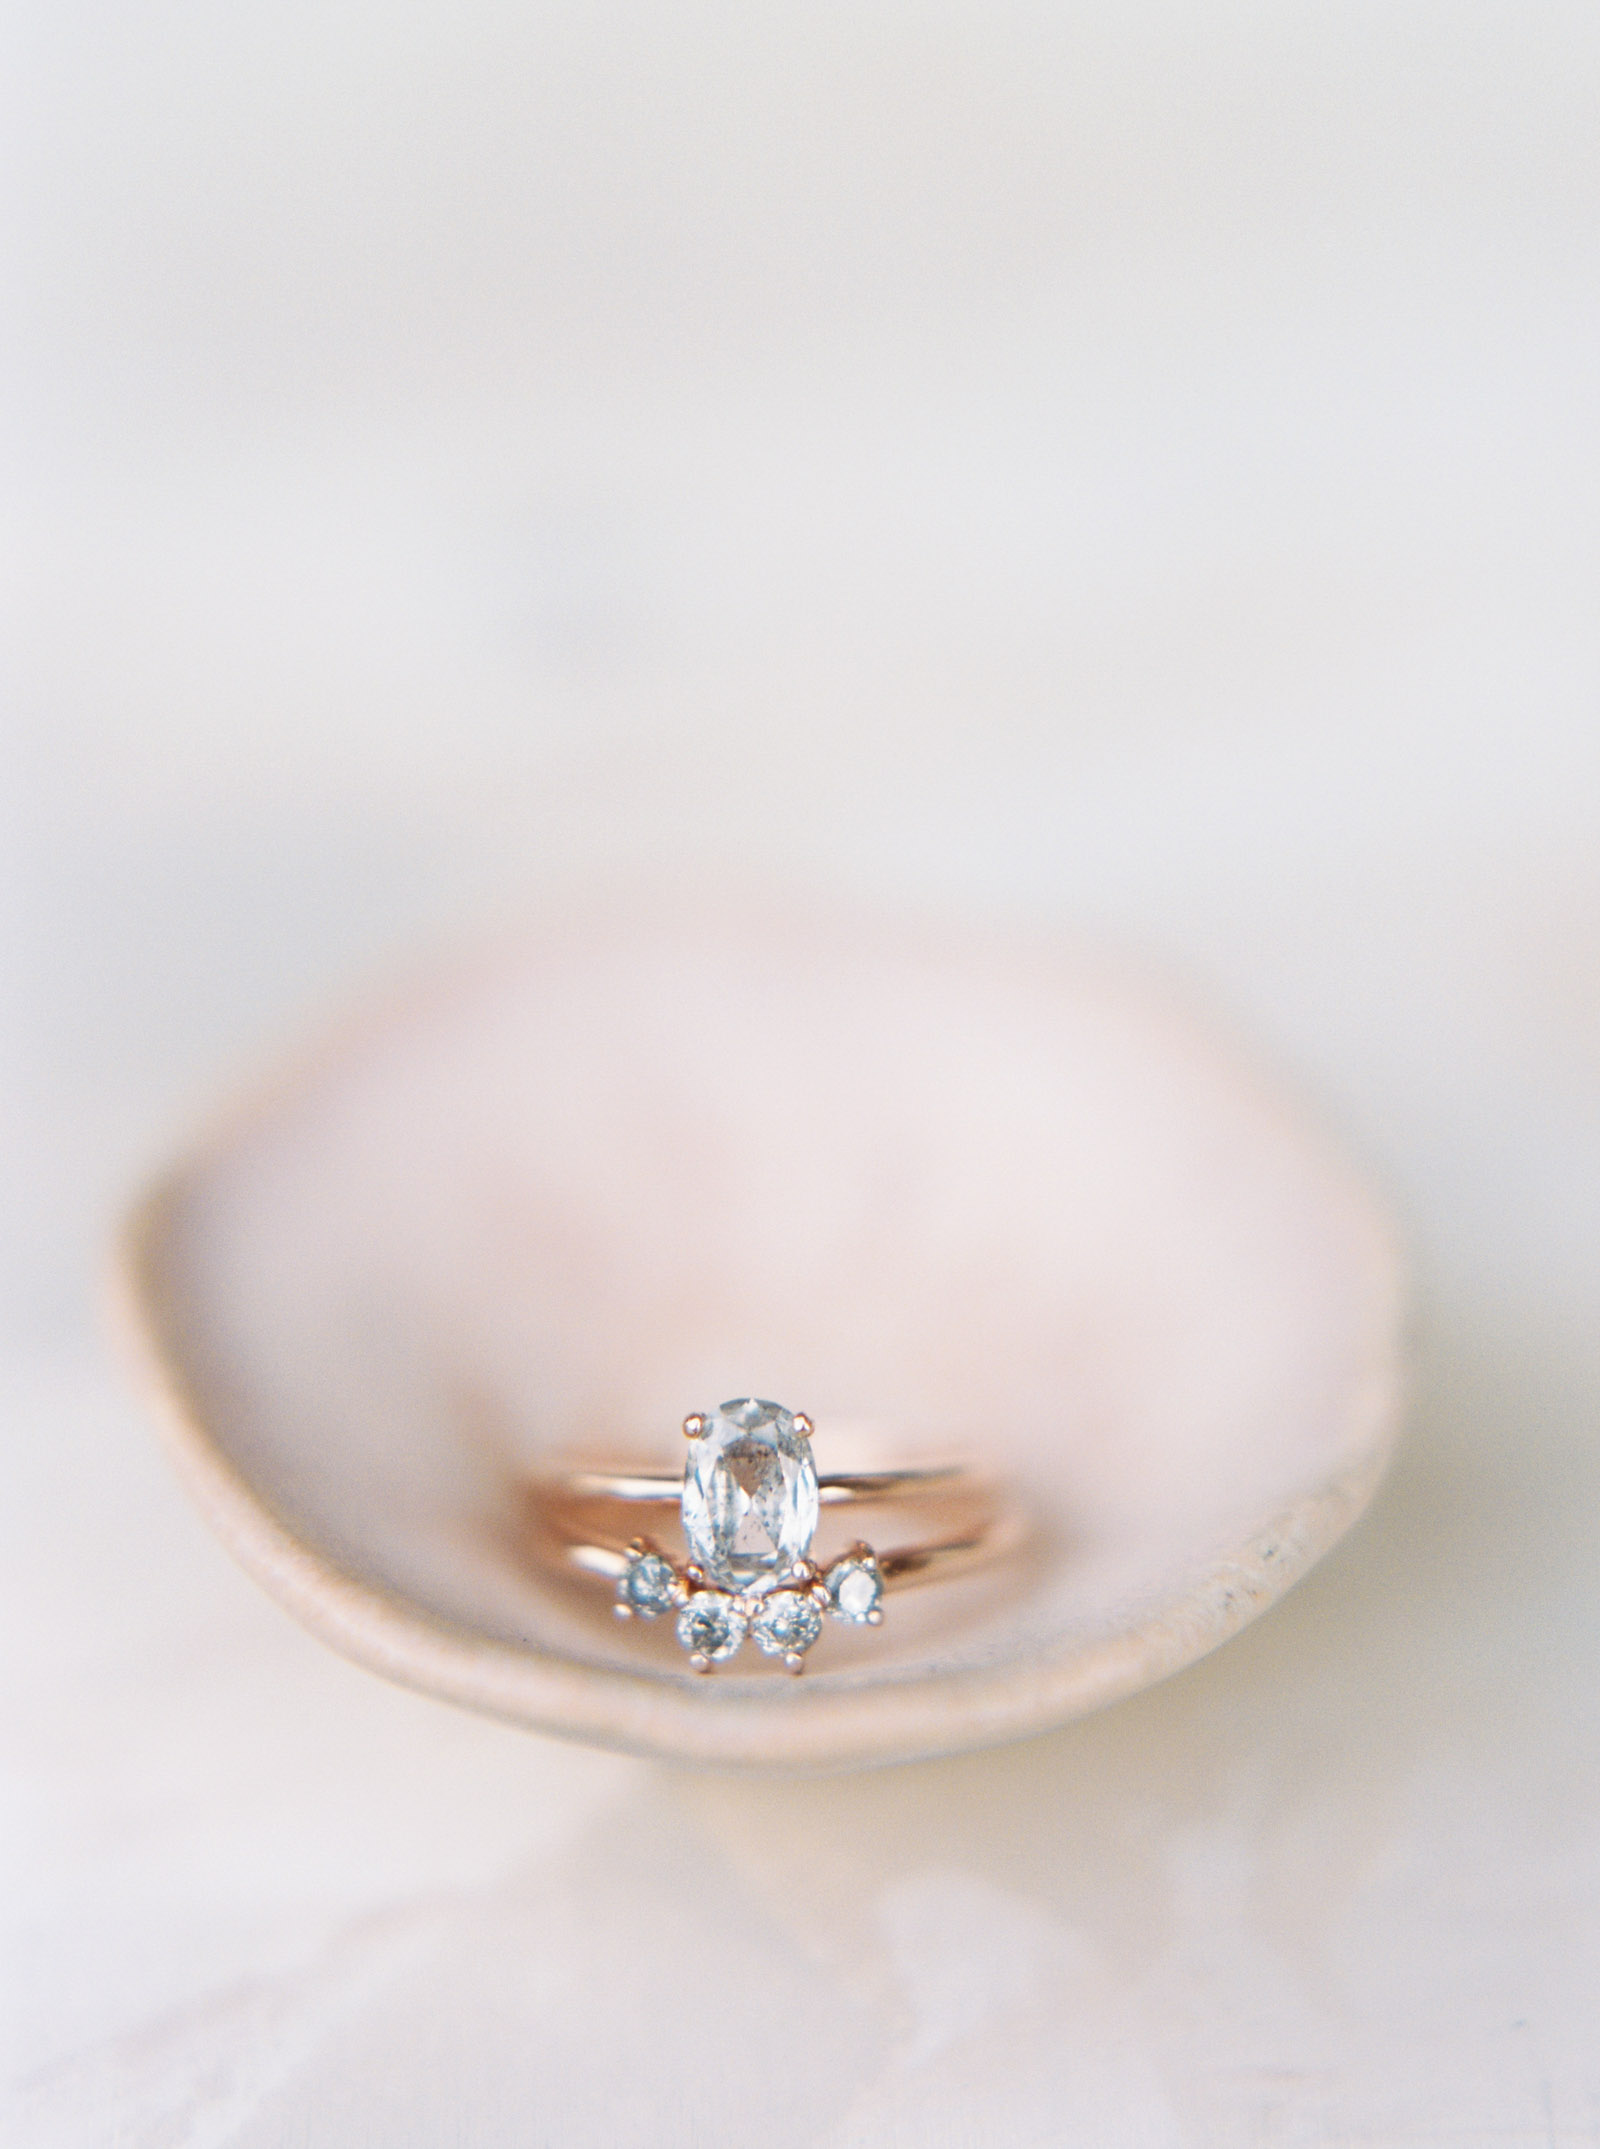 Grey diamond engagement ring captured on film by top PNW wedding photographer Anna Peters